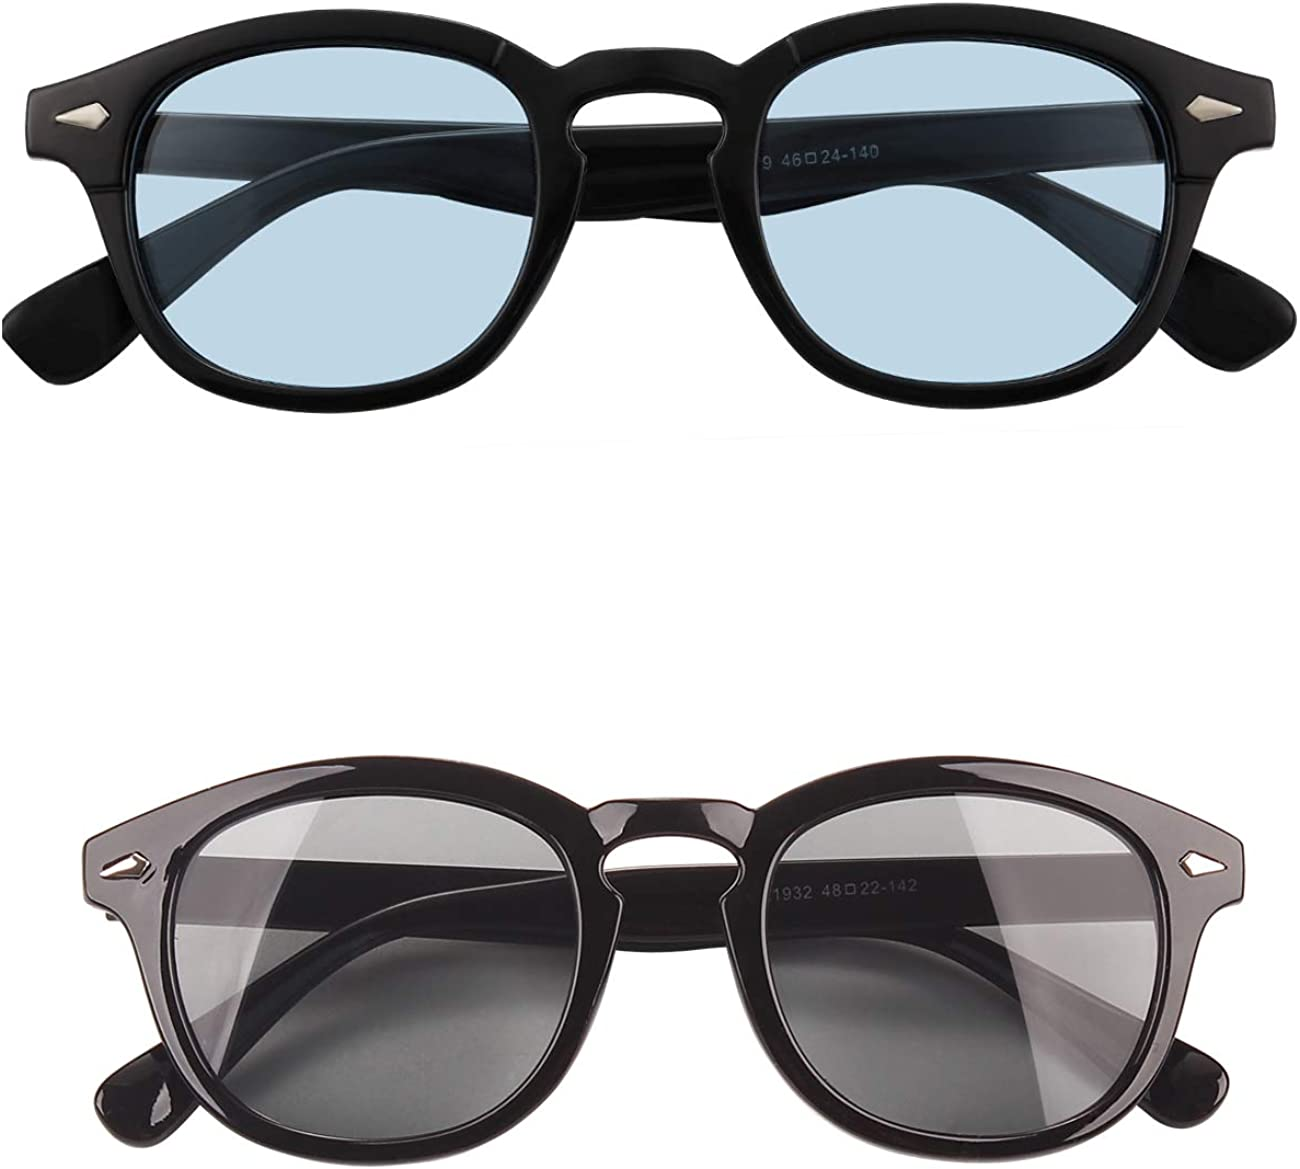 Free shipping / New Bestum Retro Inspired Sunglasses 2021 With UV400 Rivets Tinted Lens